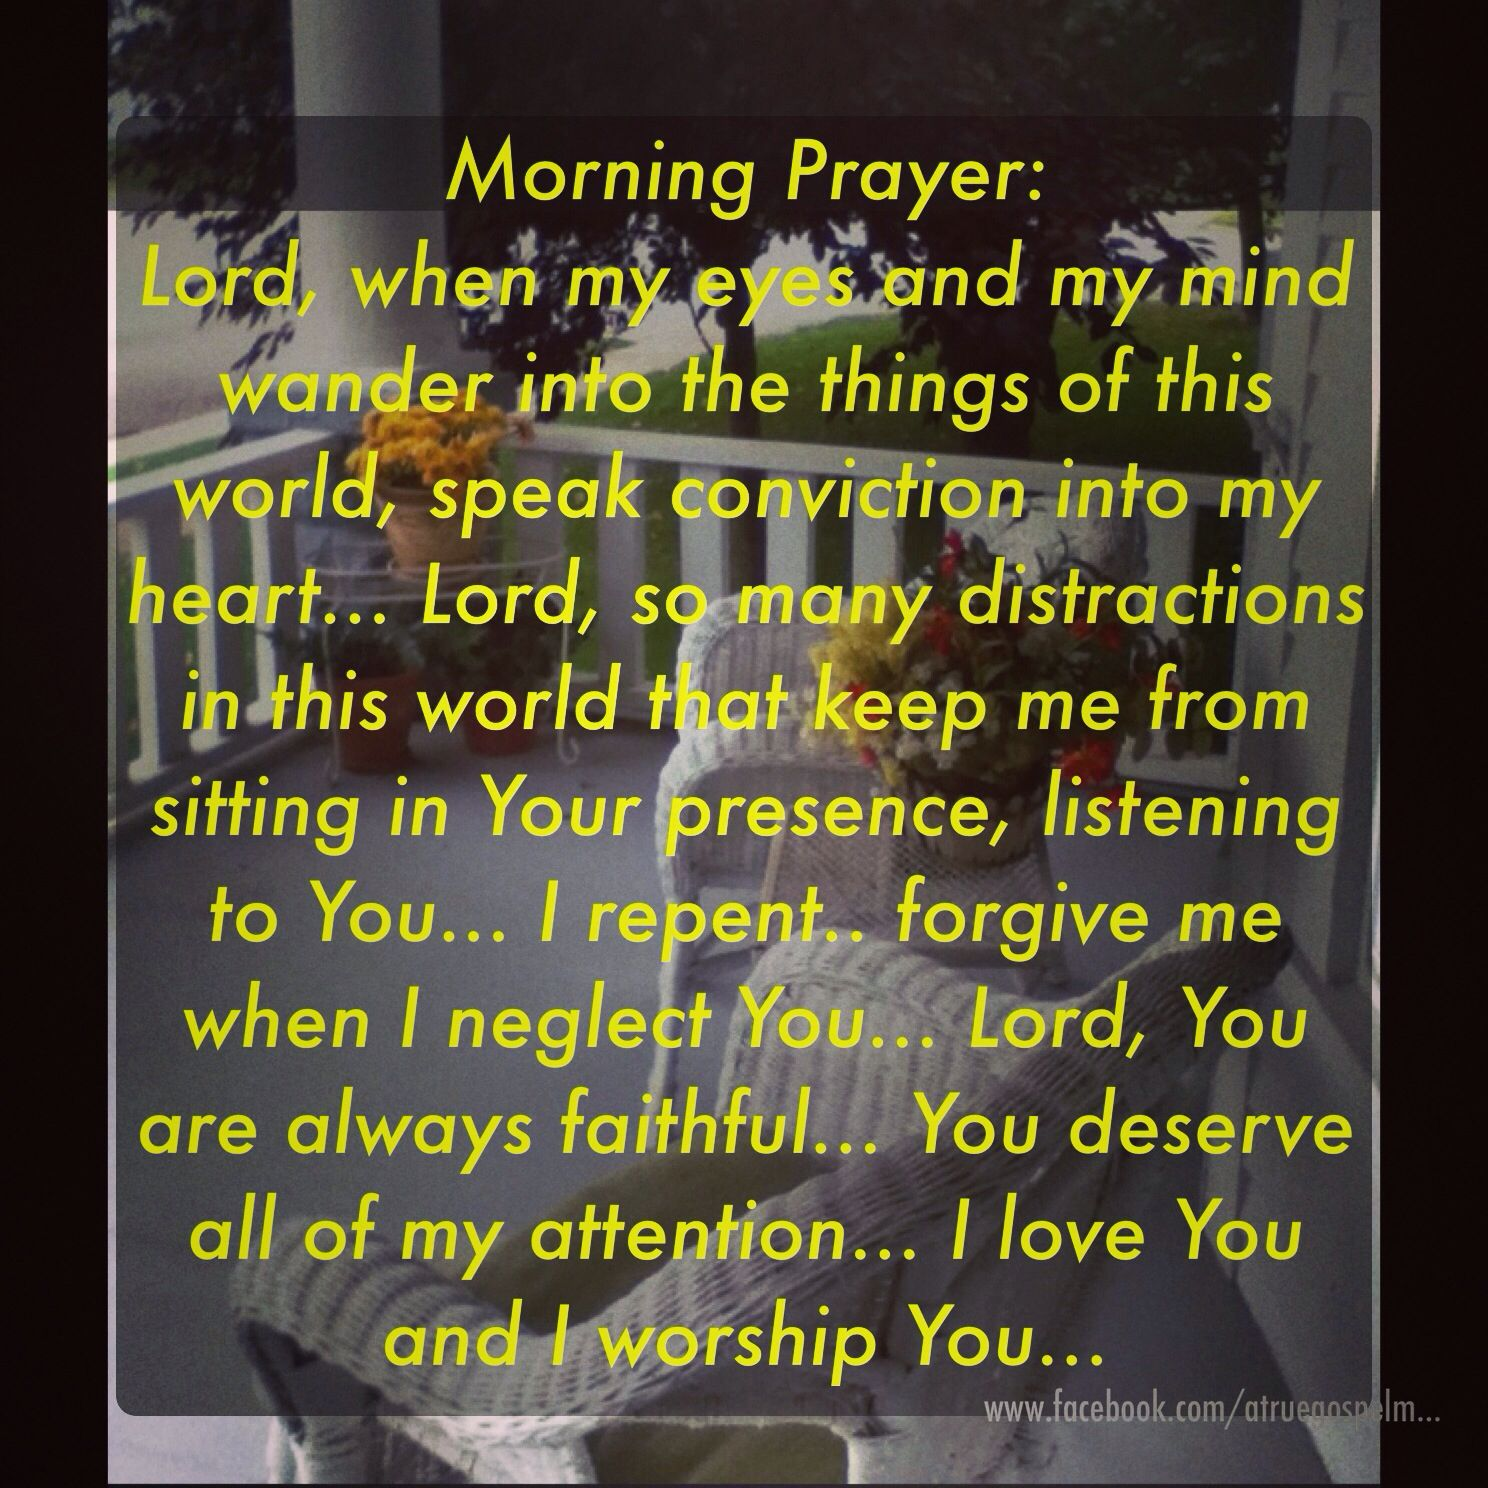 Good Morning Prayer For You : Morning prayer lord you deserve all of my attention